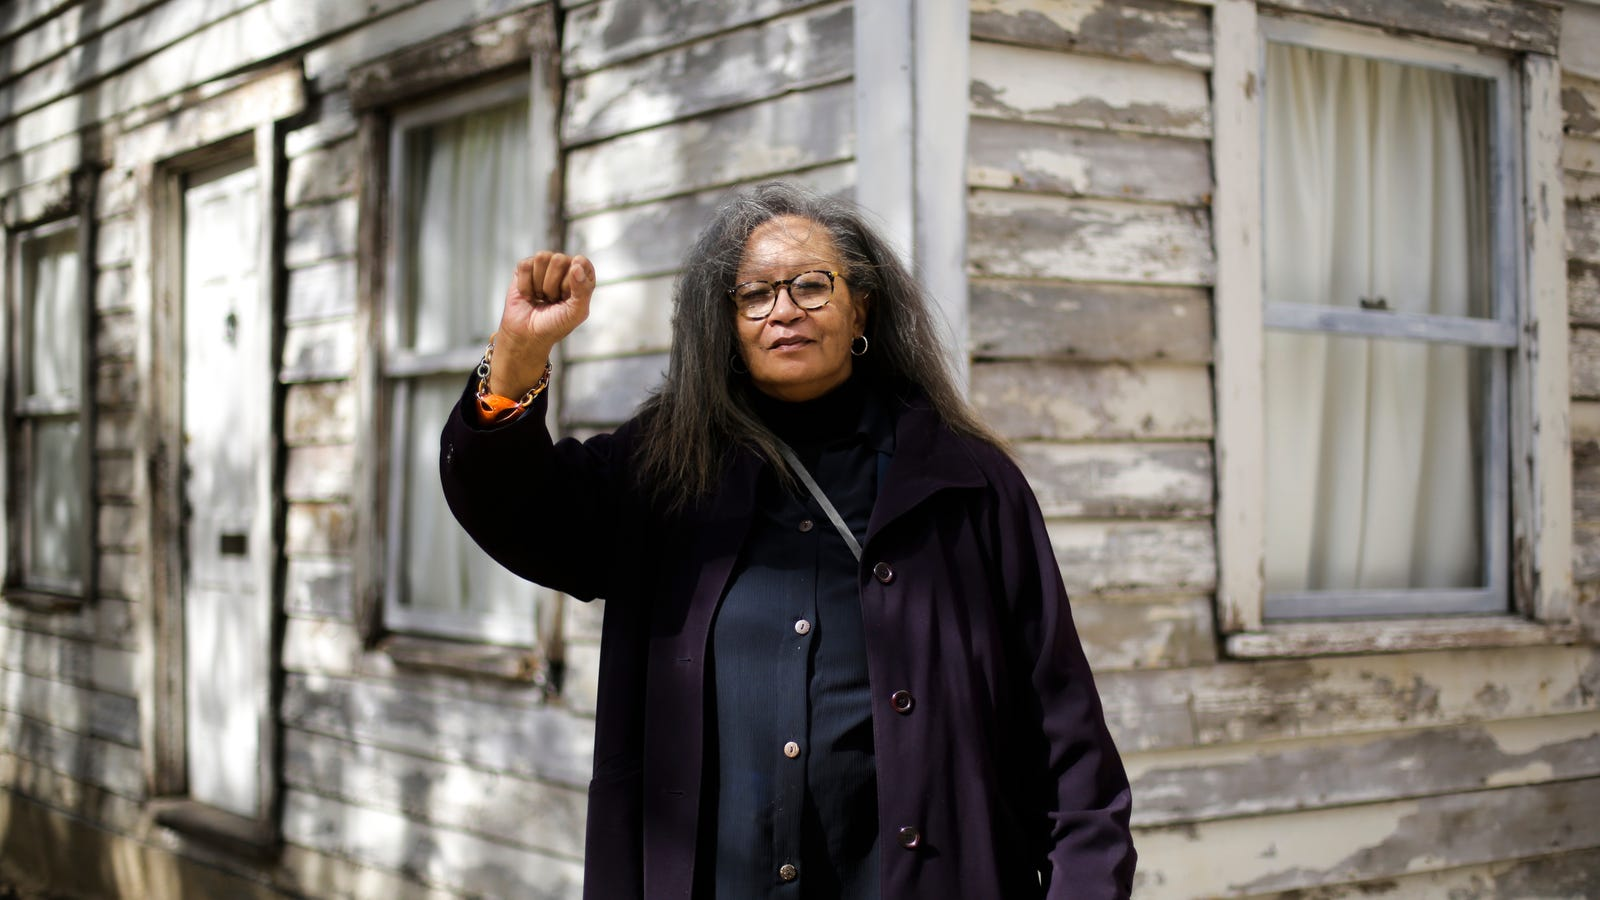 The Story Of Rosa Parks Detroit Home Reveals Hard Truths About Her